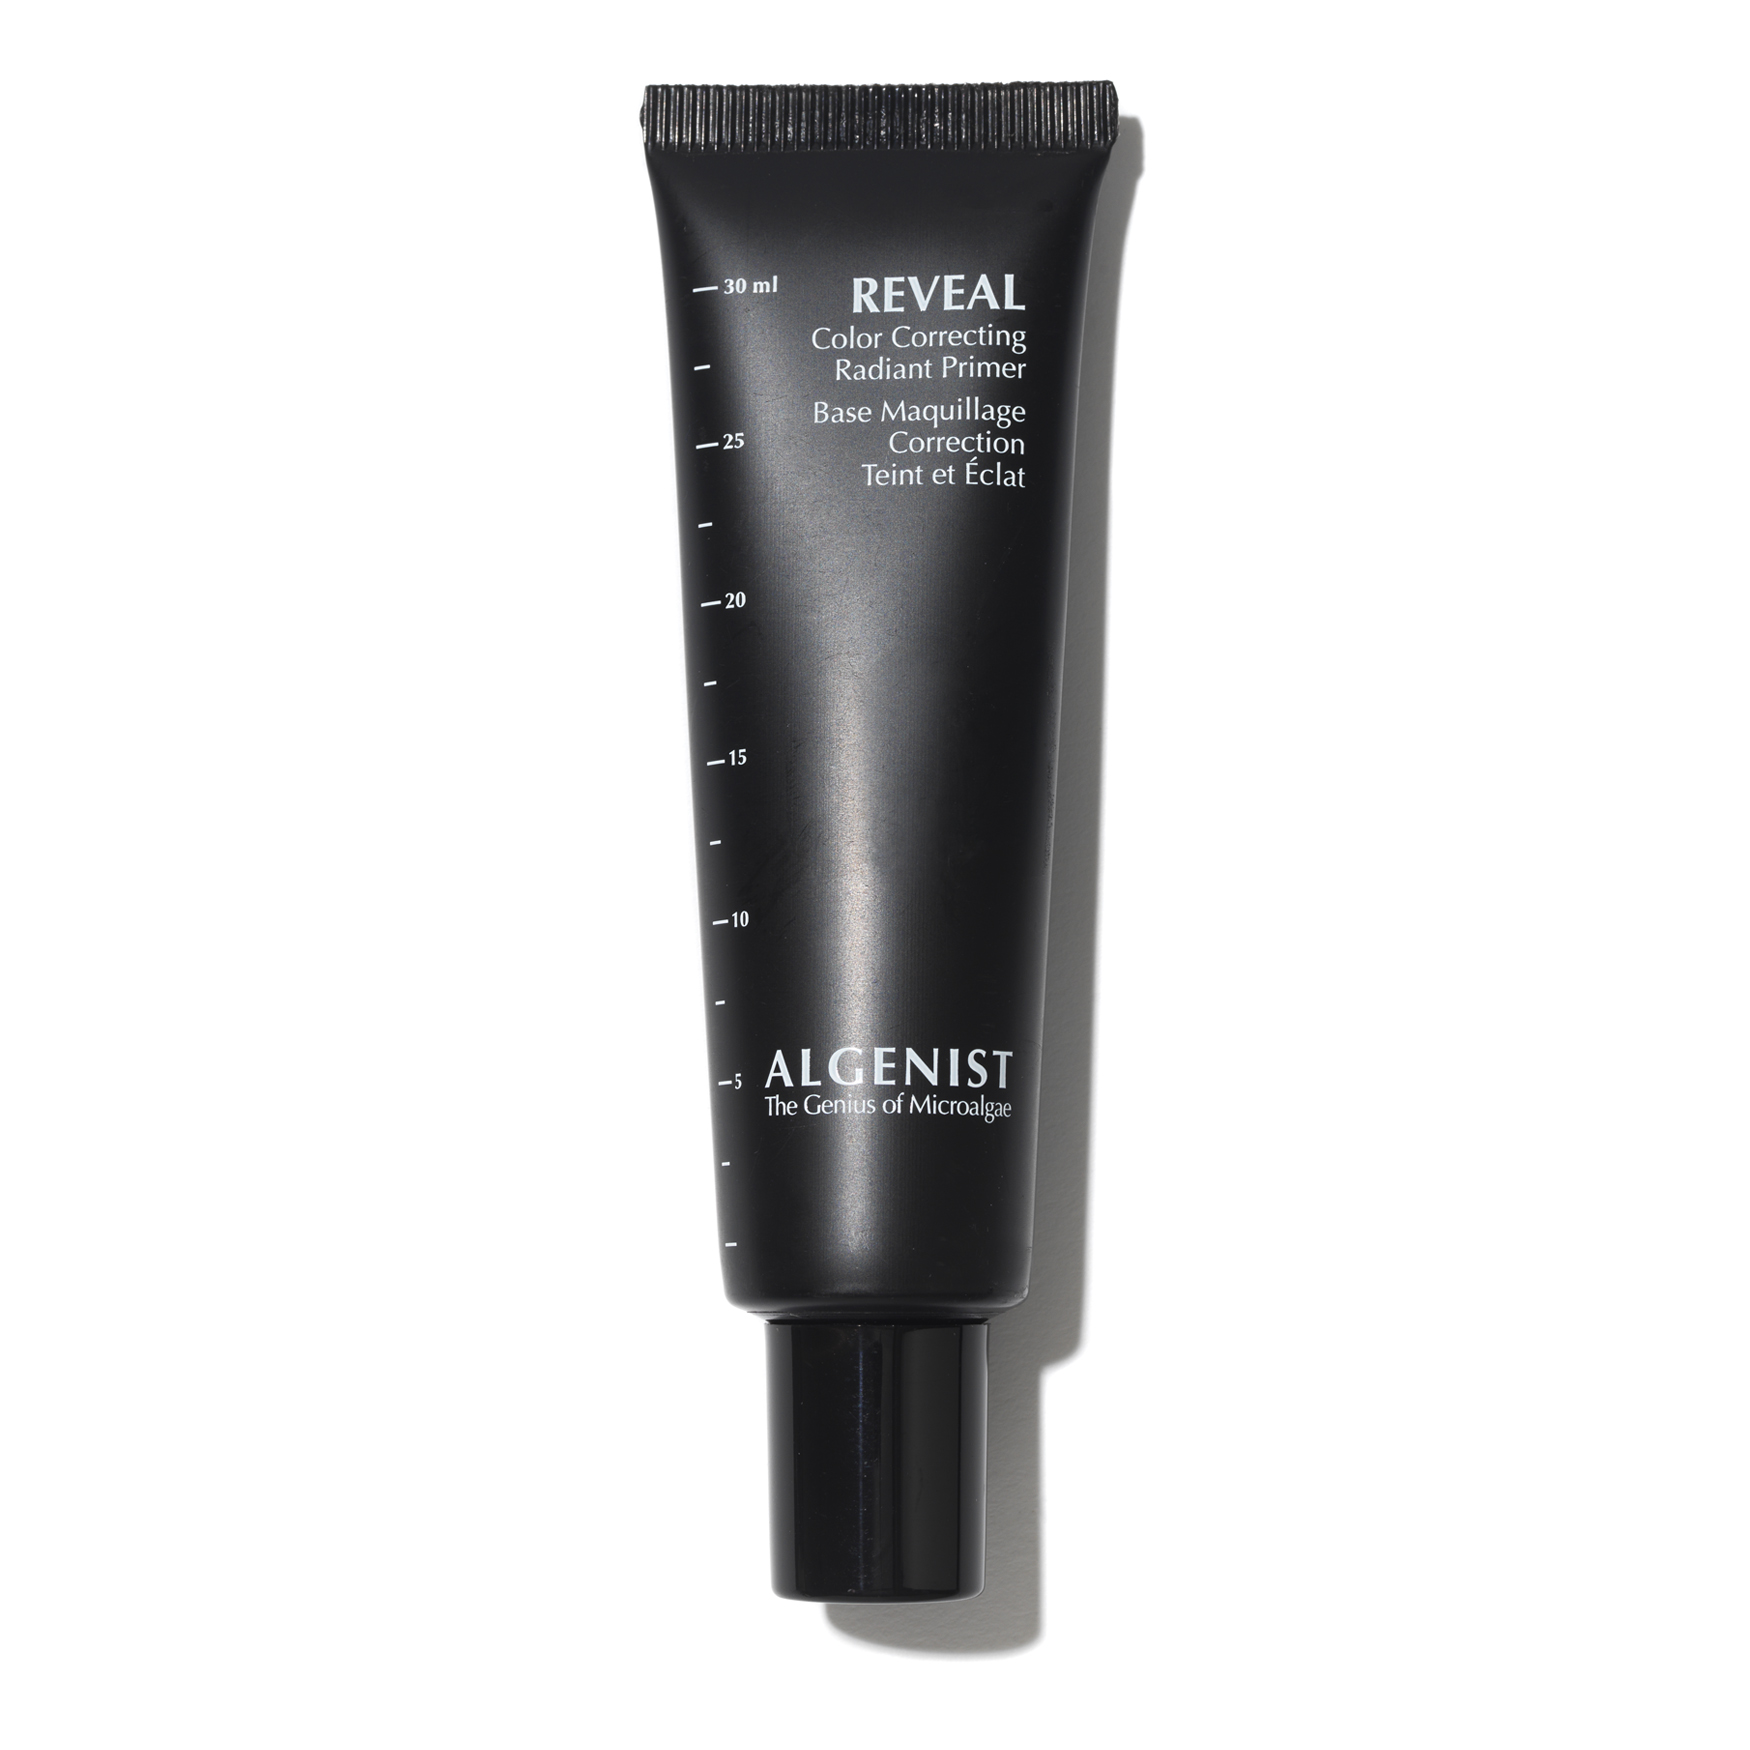 Reveal Color Correcting Radiant Primer, , large